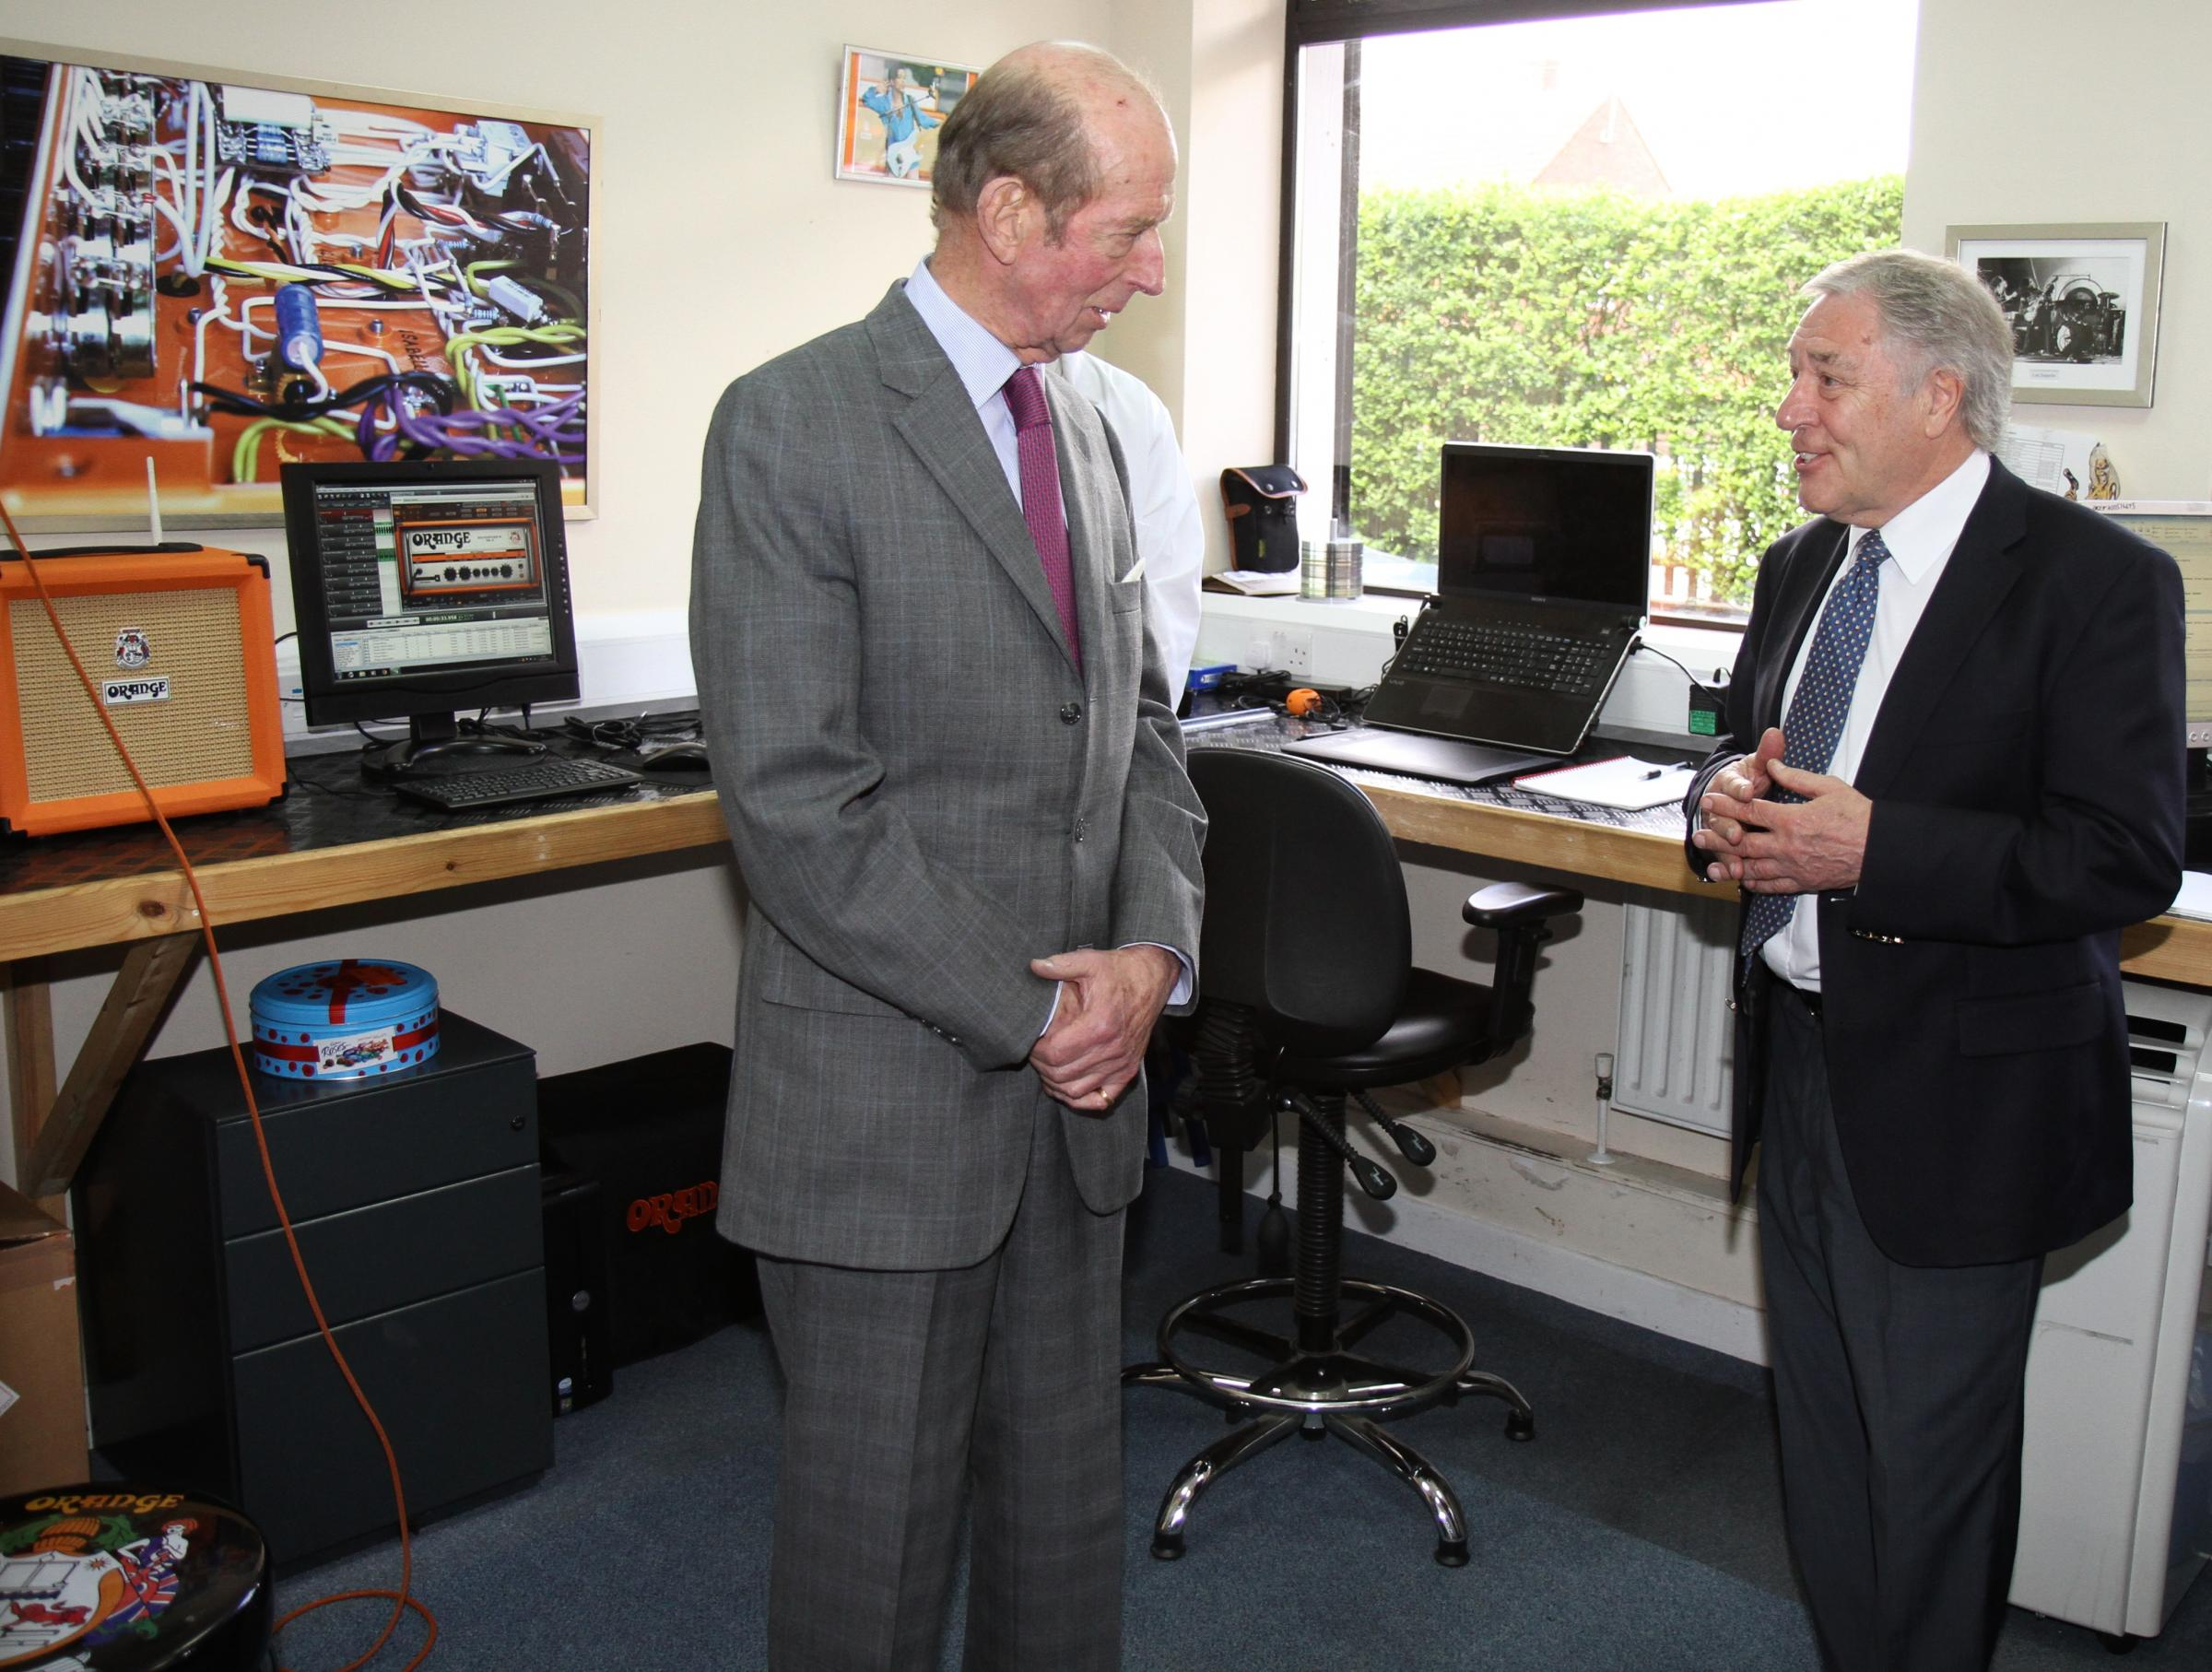 The Duke of Kent toured the company's research and development facilities with The Deputy Lieutenant of Hertfordshire, Stuart Nagler JP, along with a number of councillors and council staff.